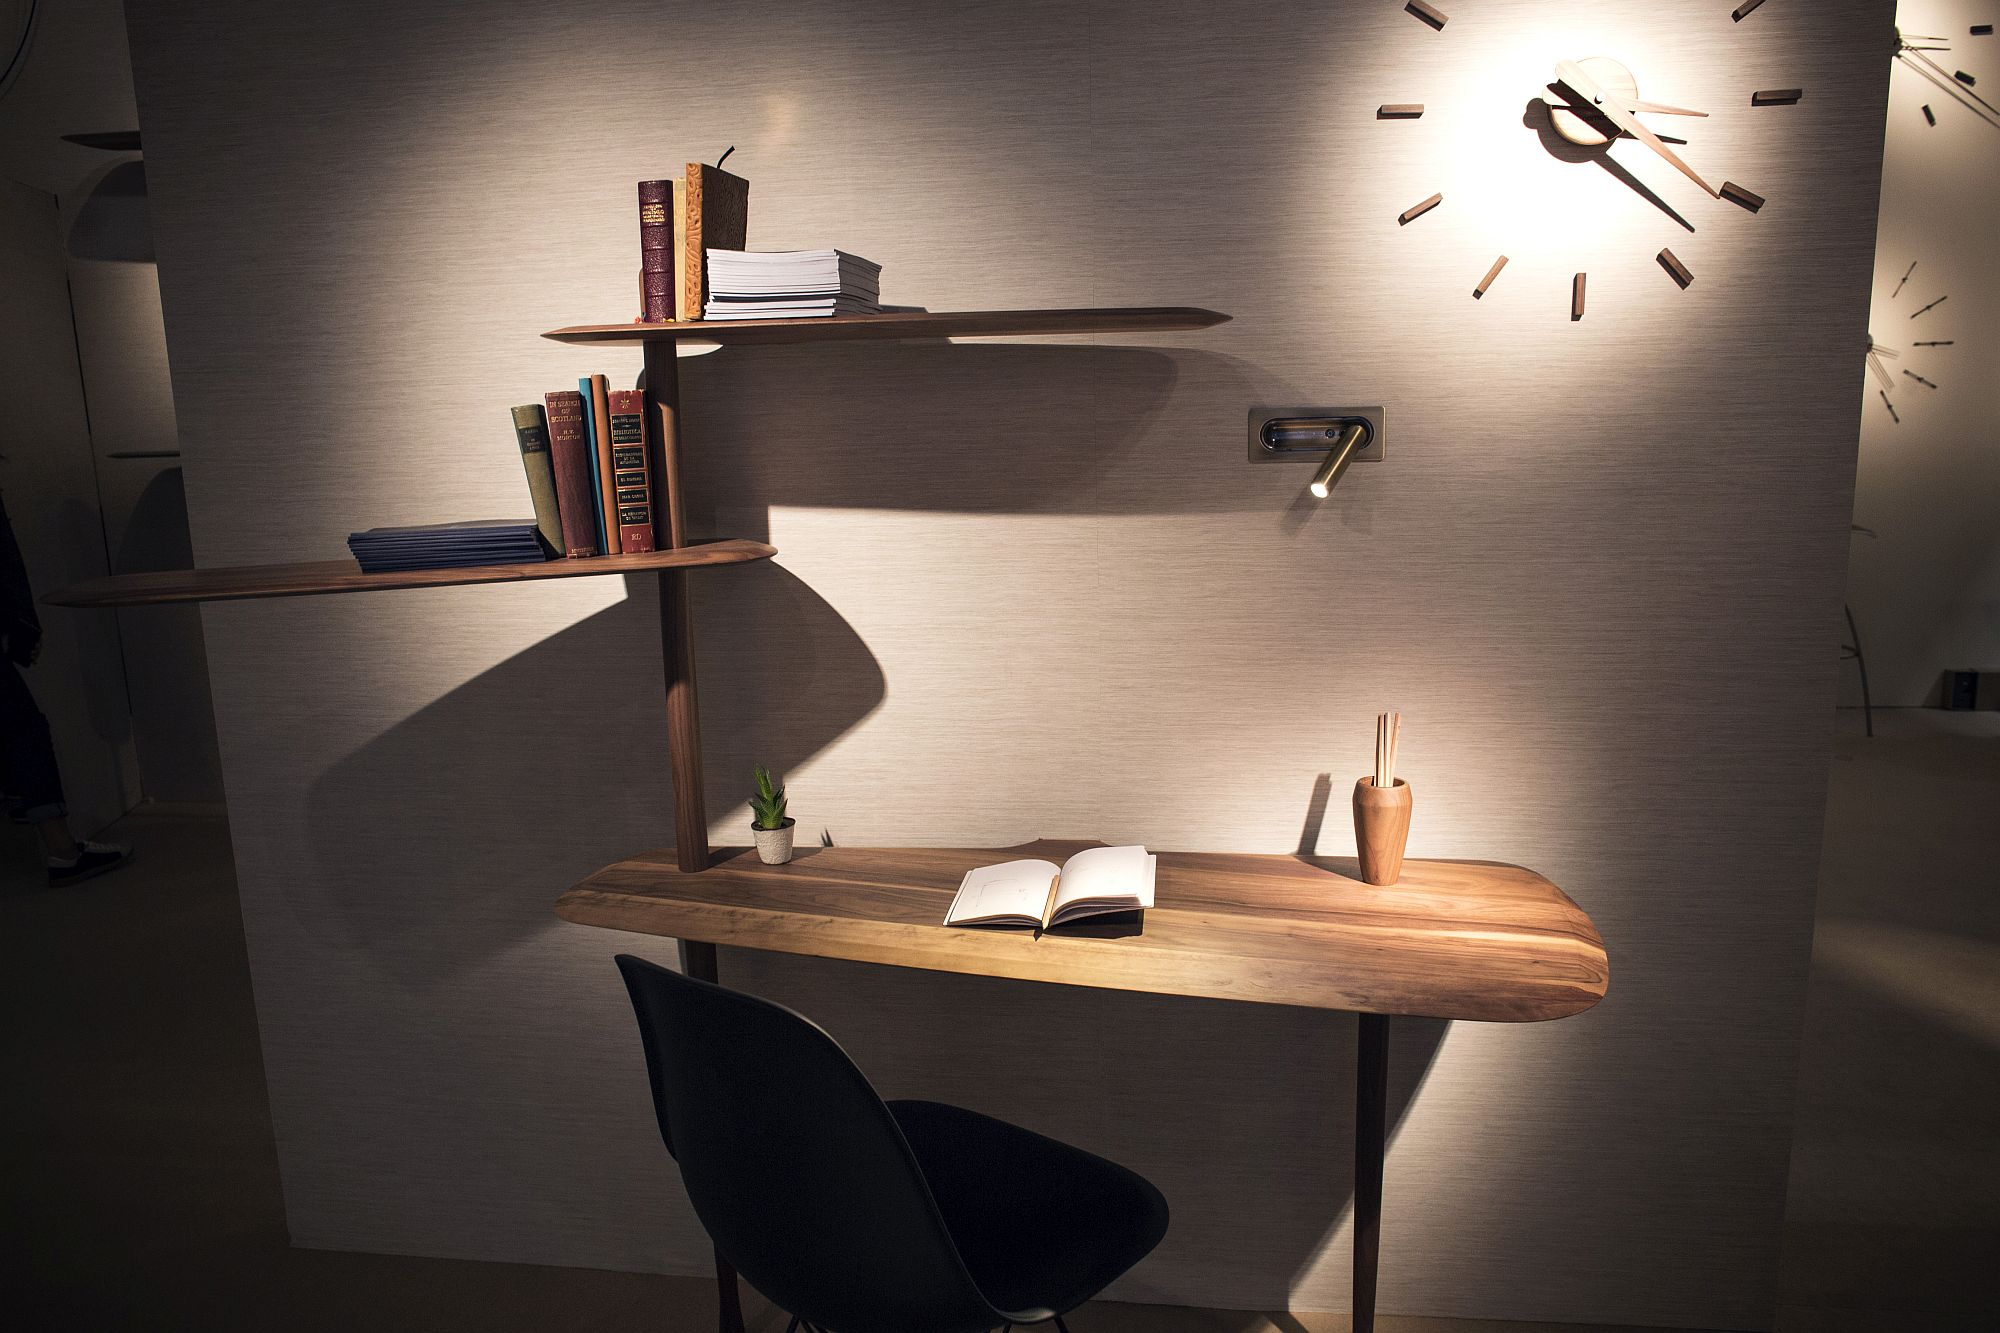 Innovative-desk-from-Unica-Collection-for-the-space-savvy-workzone